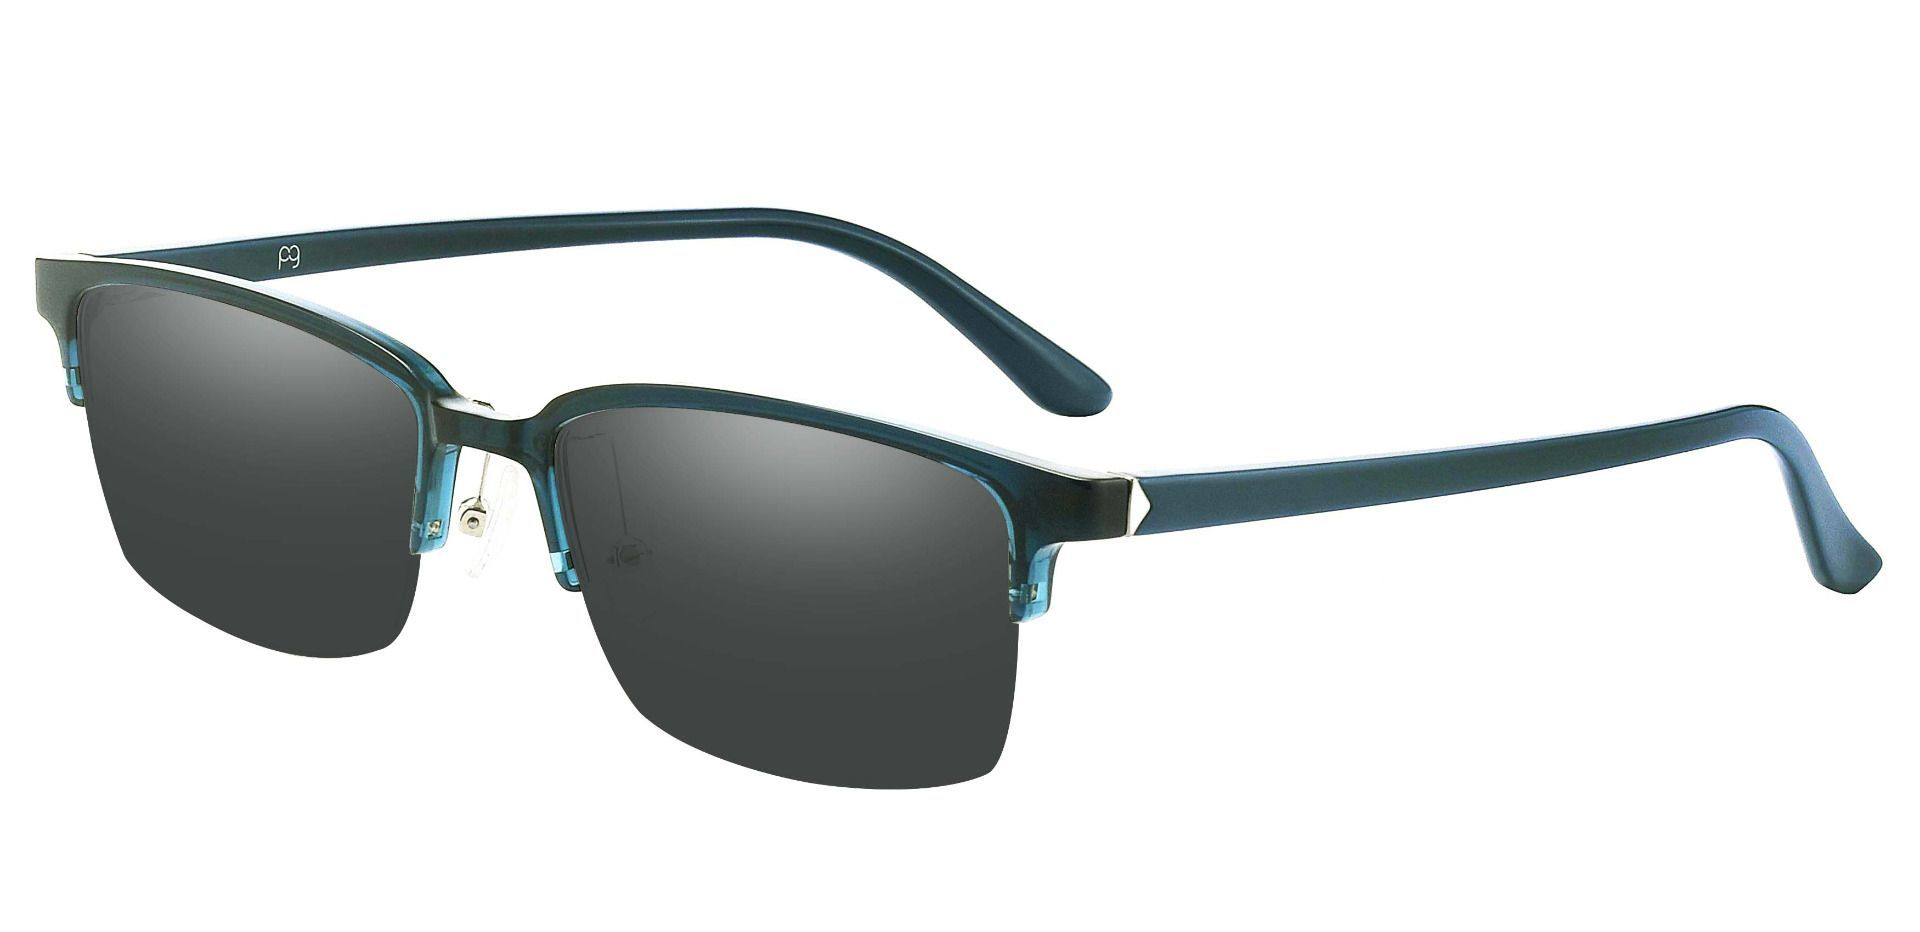 Cello Rectangle Prescription Sunglasses - Blue Frame With Gray Lenses